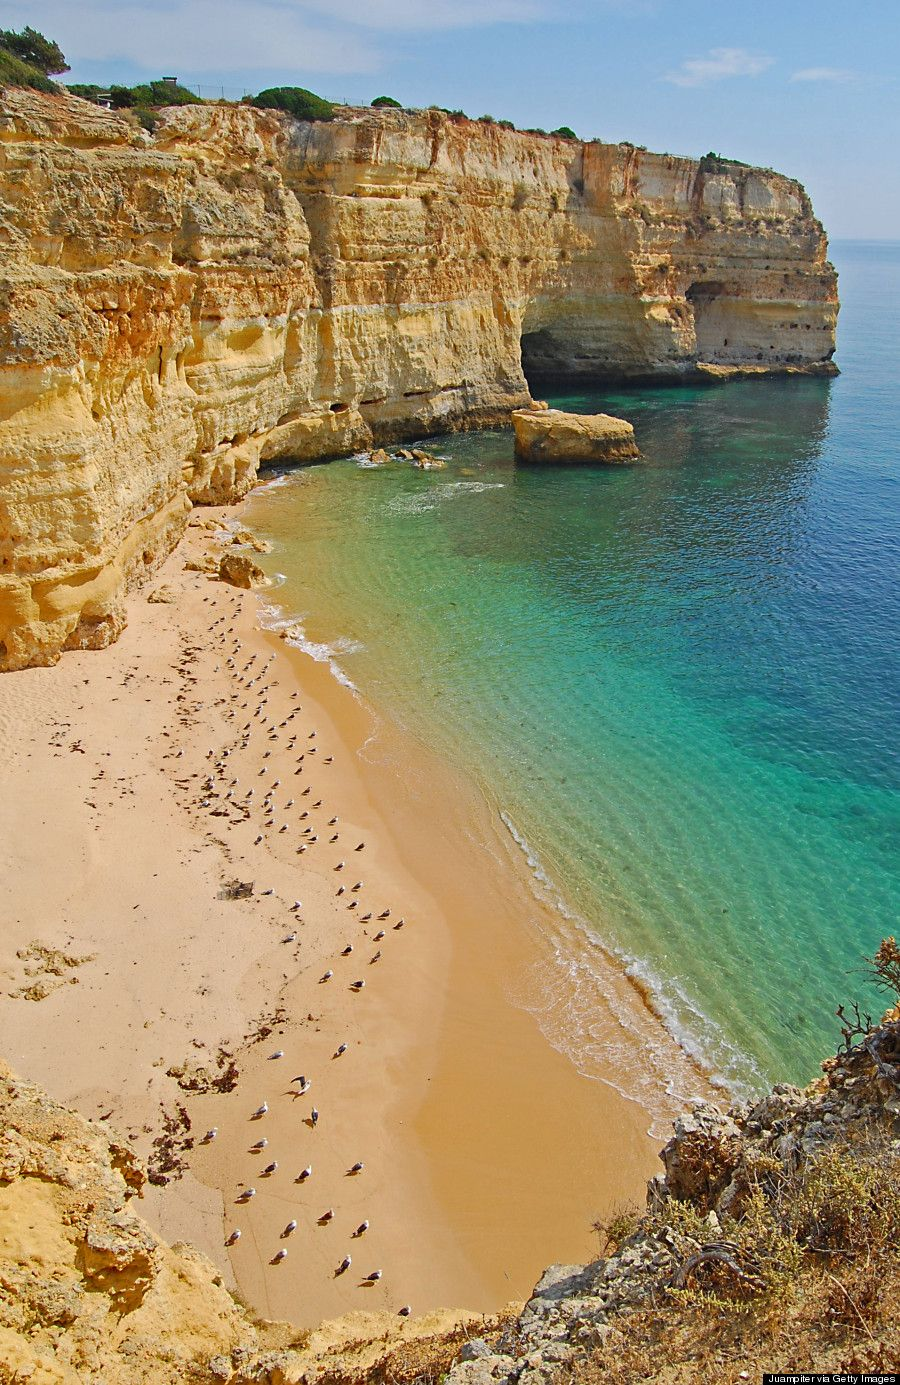 Best Beach Bodies Of 2016: Marinha Beach Is Clearly One Of The Best Beaches In The